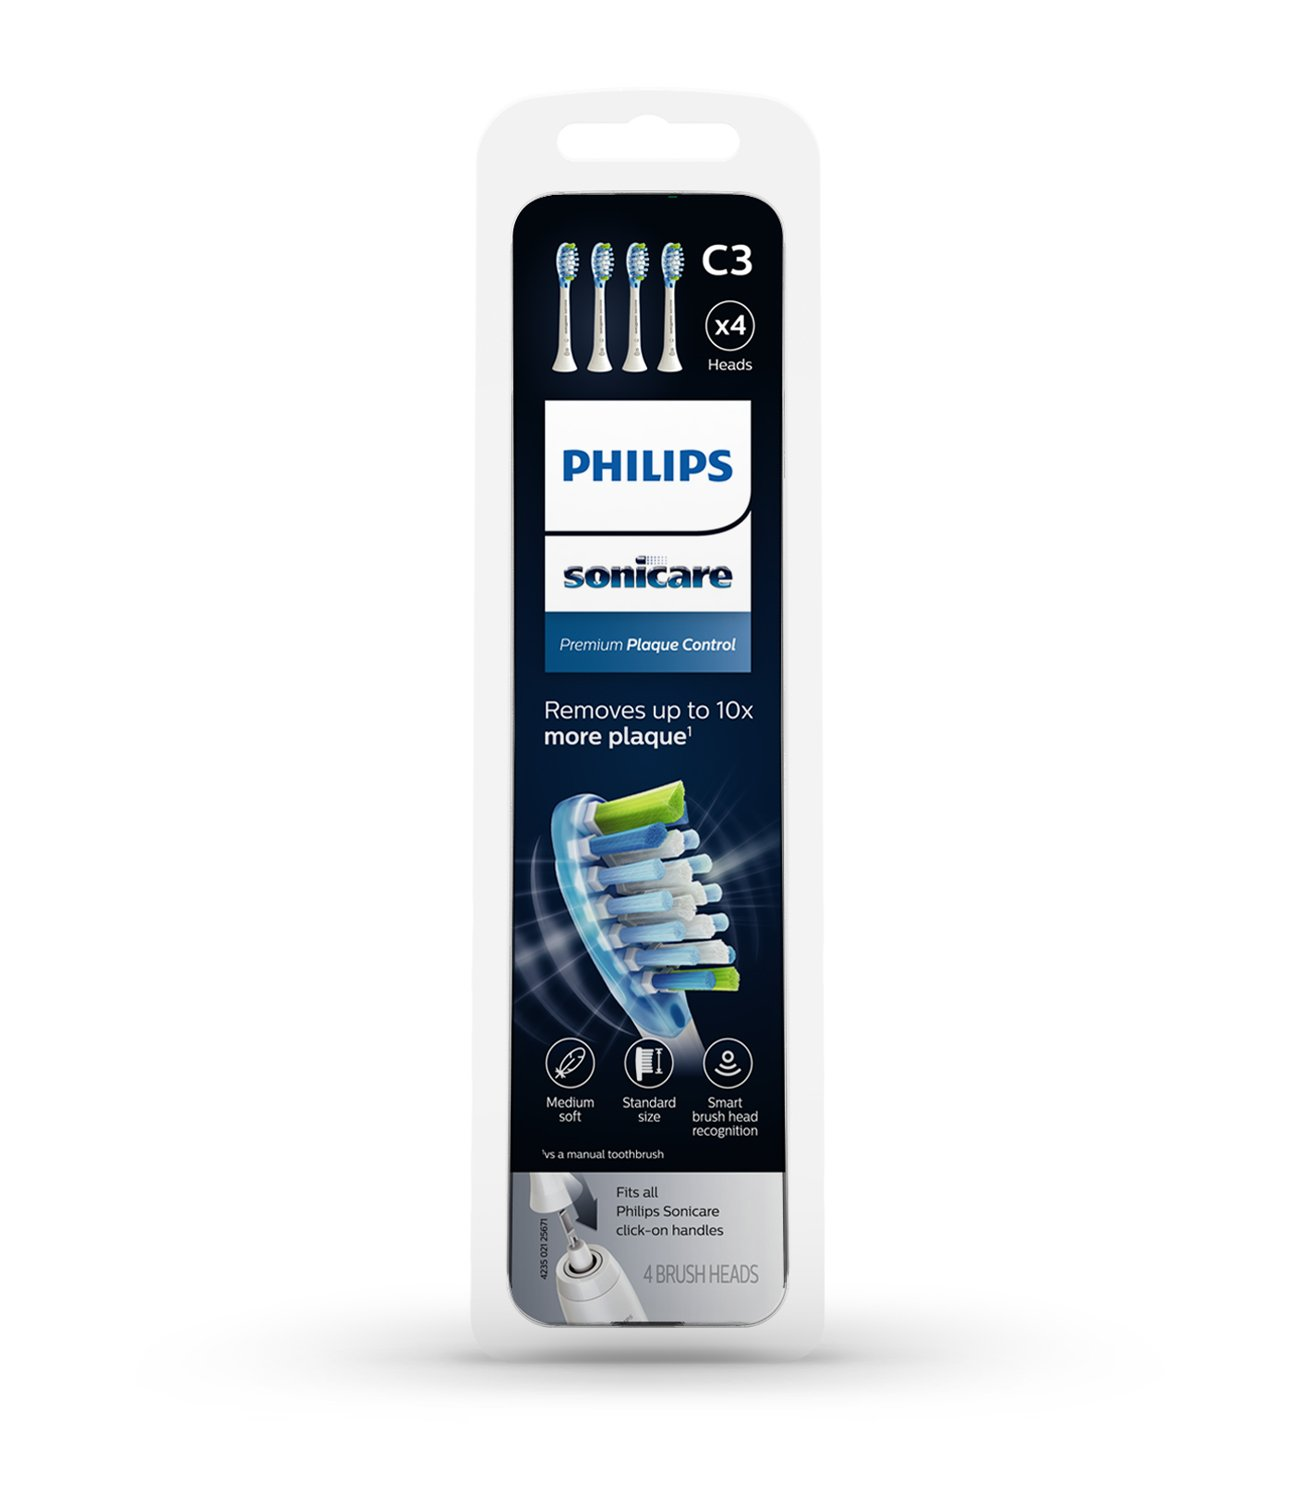 Philips Sonicare Premium Plaque Control replacement toothbrush heads, HX9044/65, Smart recognition, White 4-pk by Philips Sonicare (Image #7)